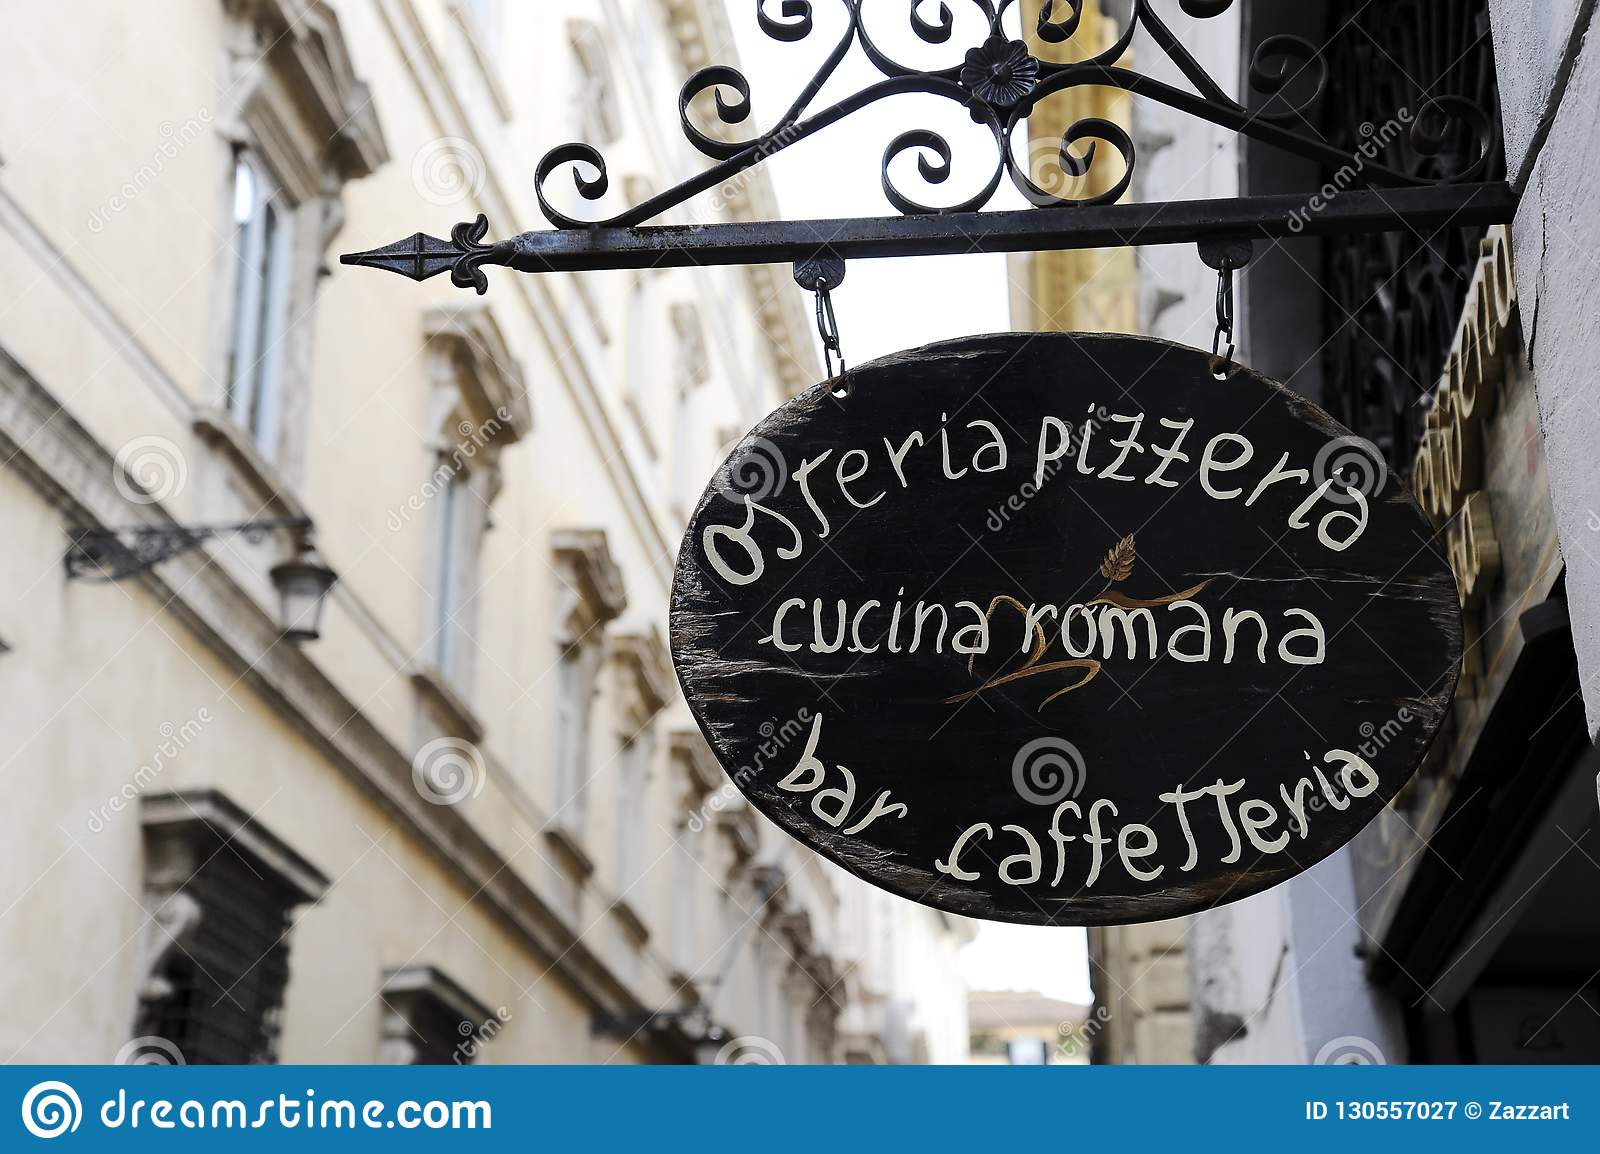 Cucina Osteria Rome Roman Cuisine Sign Of Italian Restaurant In Rome Italy Stock